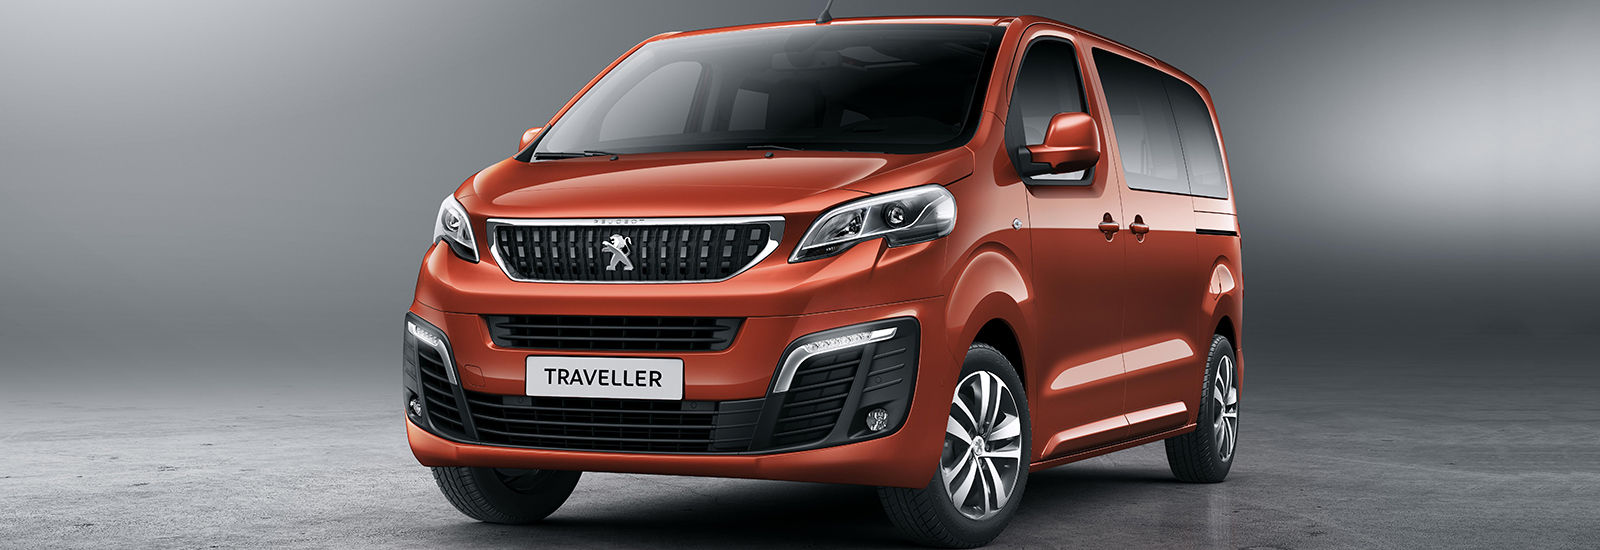 peugeot traveller price specs and release date carwow. Black Bedroom Furniture Sets. Home Design Ideas